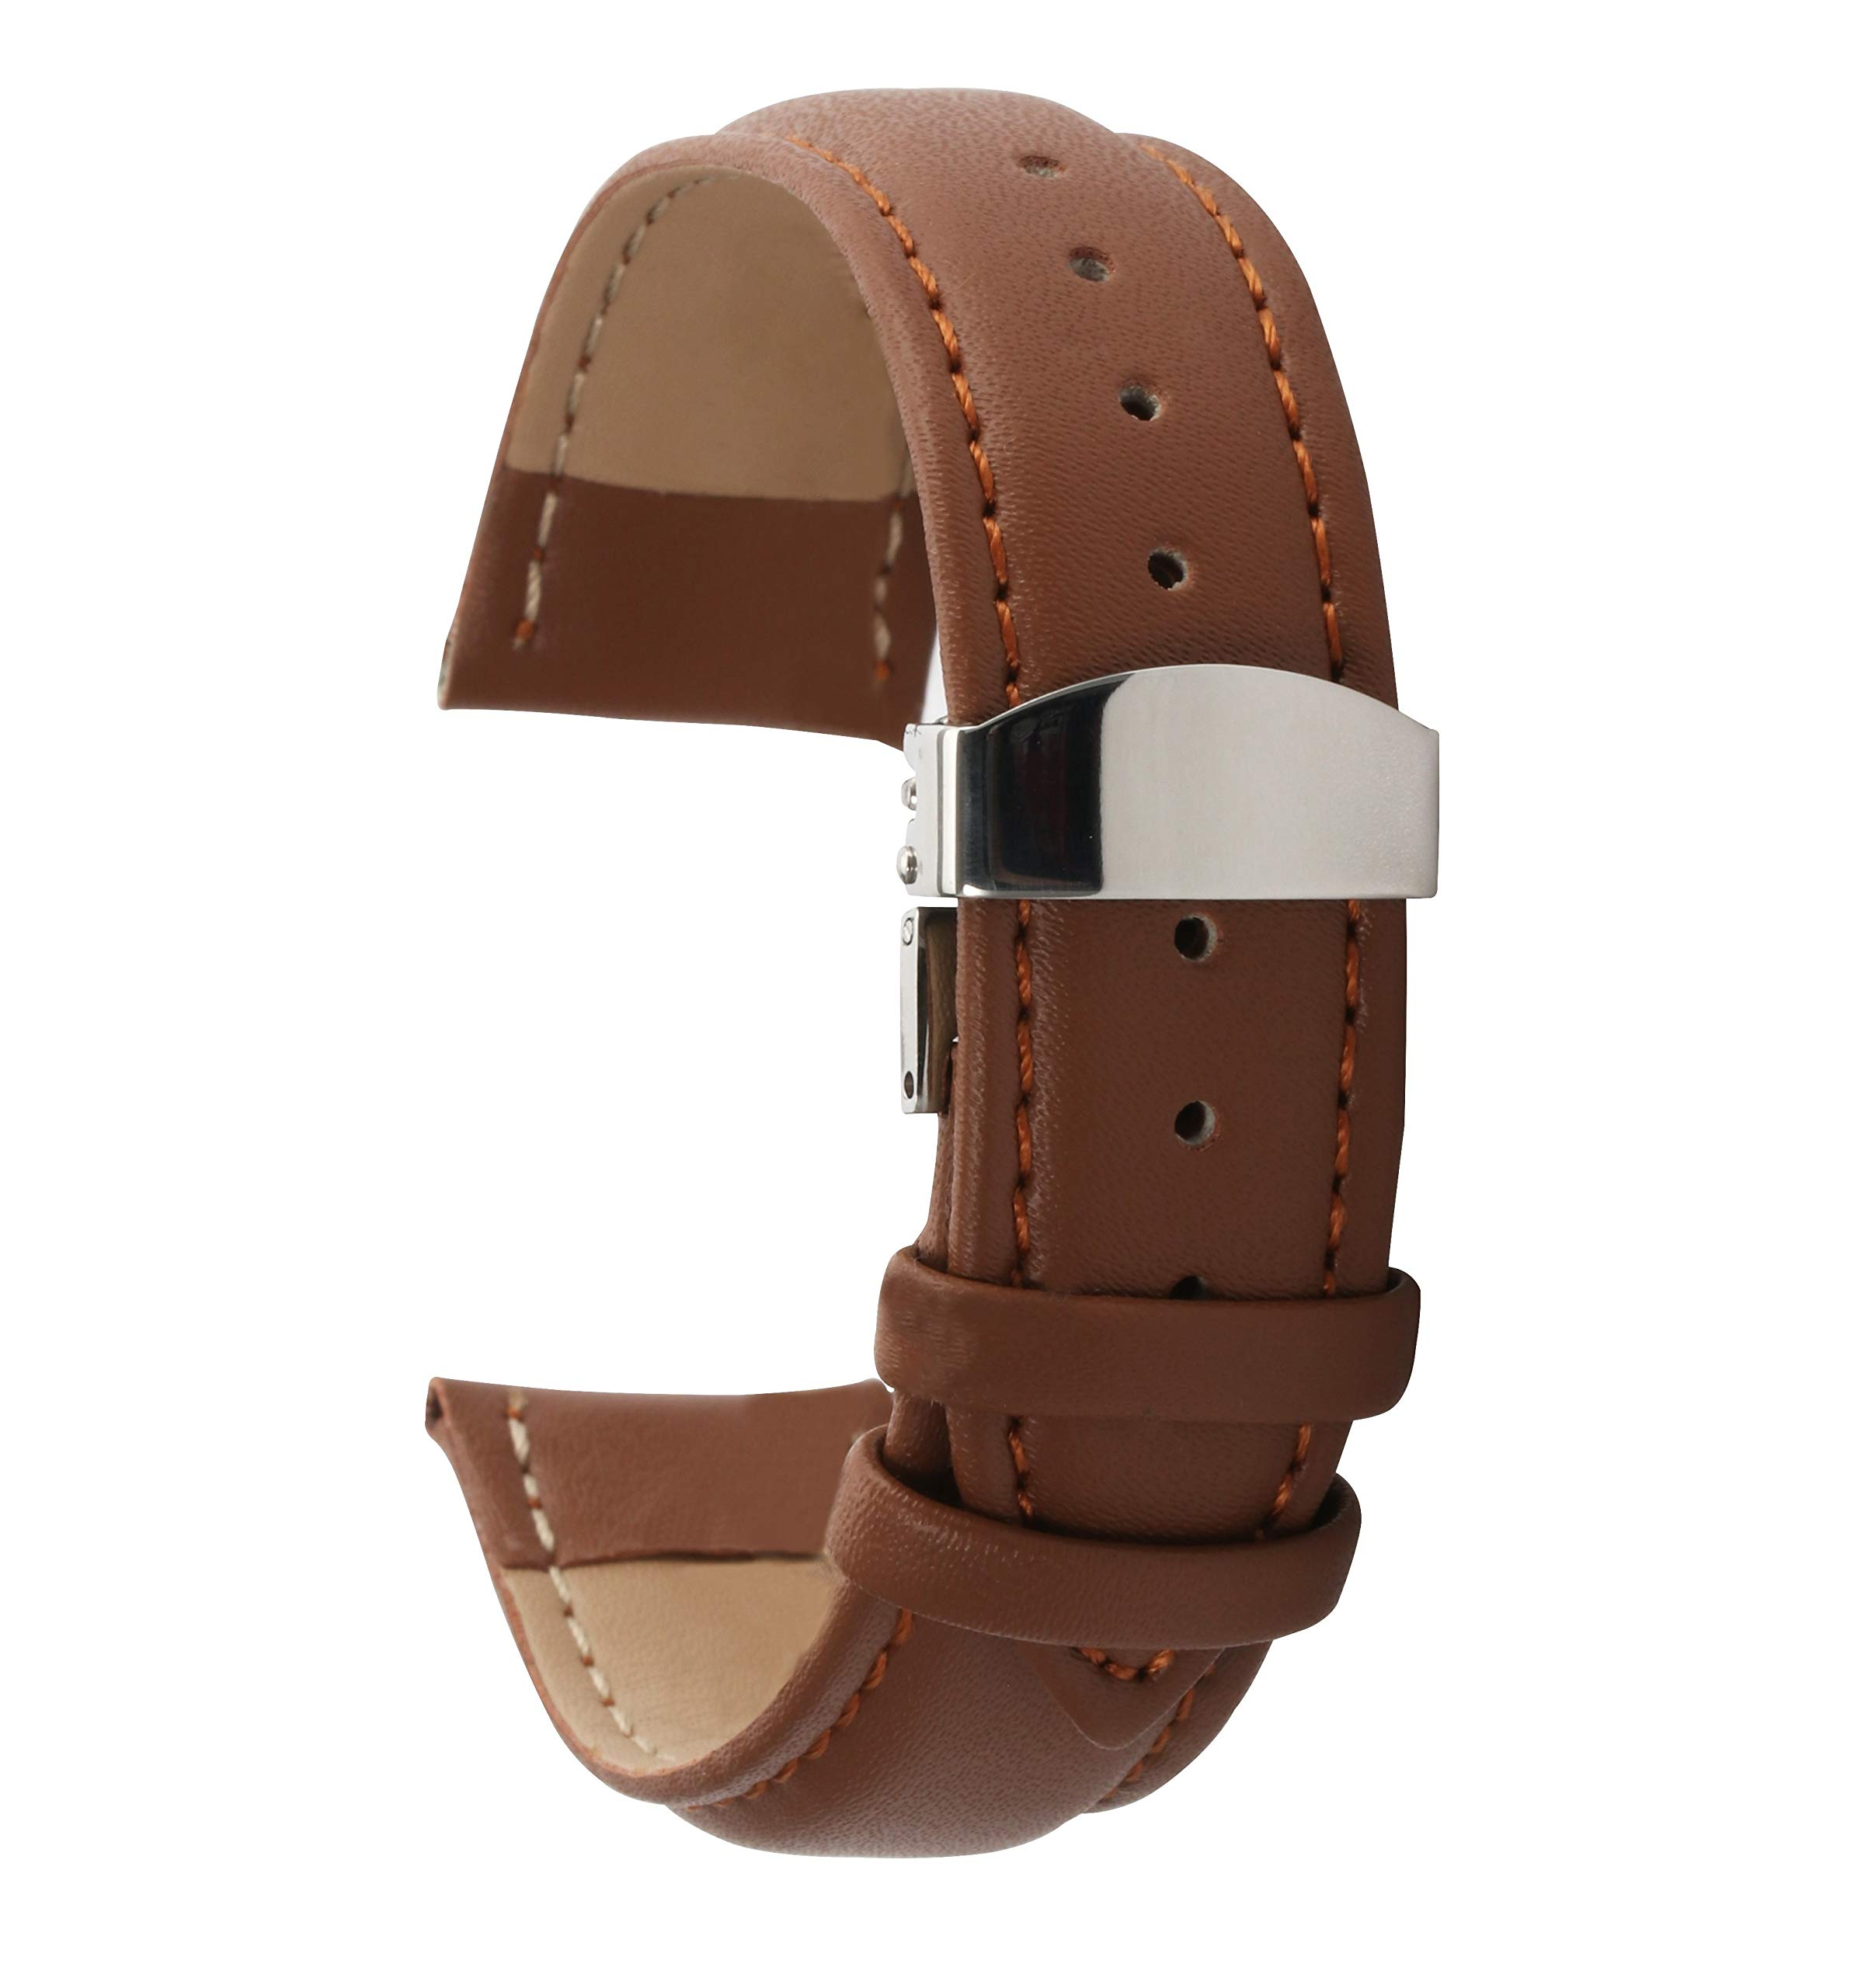 14mm Watch Band for Women Leather Strap Replacement Deployment Buckle